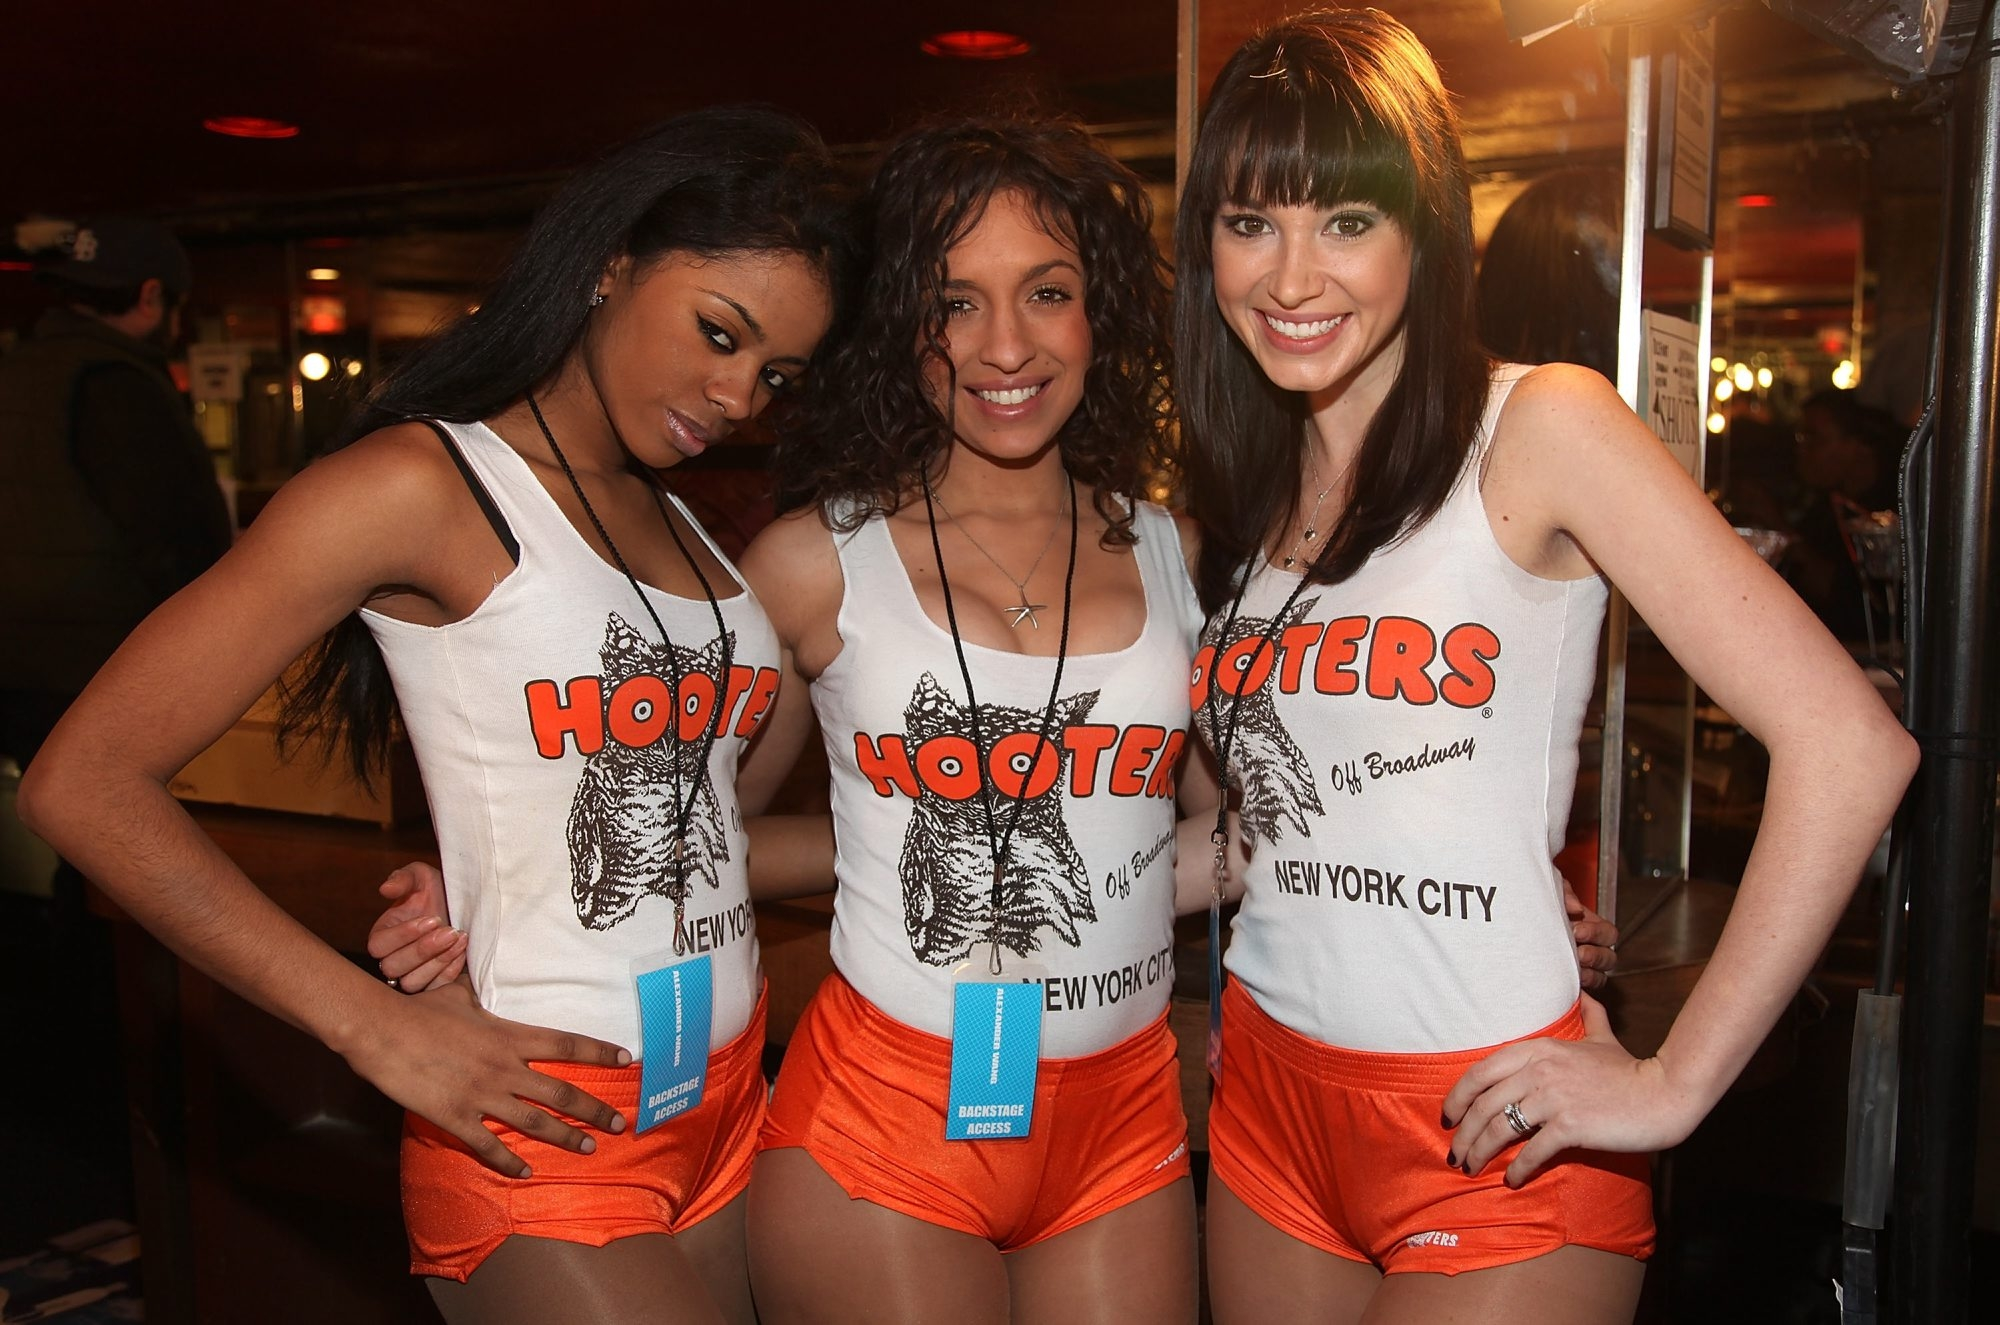 Hooters girls in New York City pose backstage at a fashion show at Roseland Ballroom. (Getty file photo)